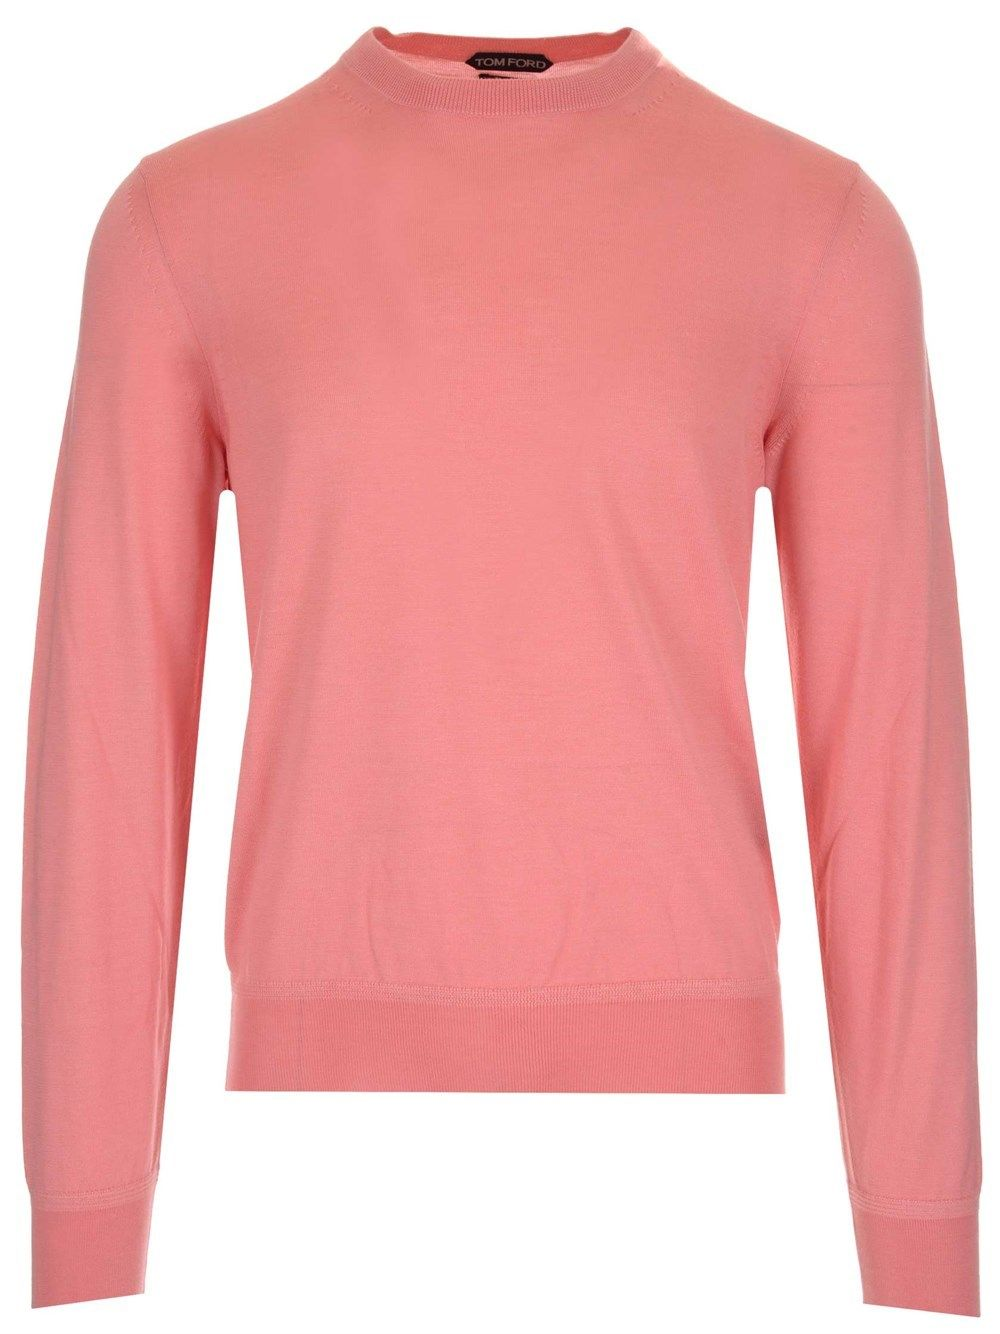 Tom Ford TOM FORD MEN'S PINK OTHER MATERIALS SWEATER